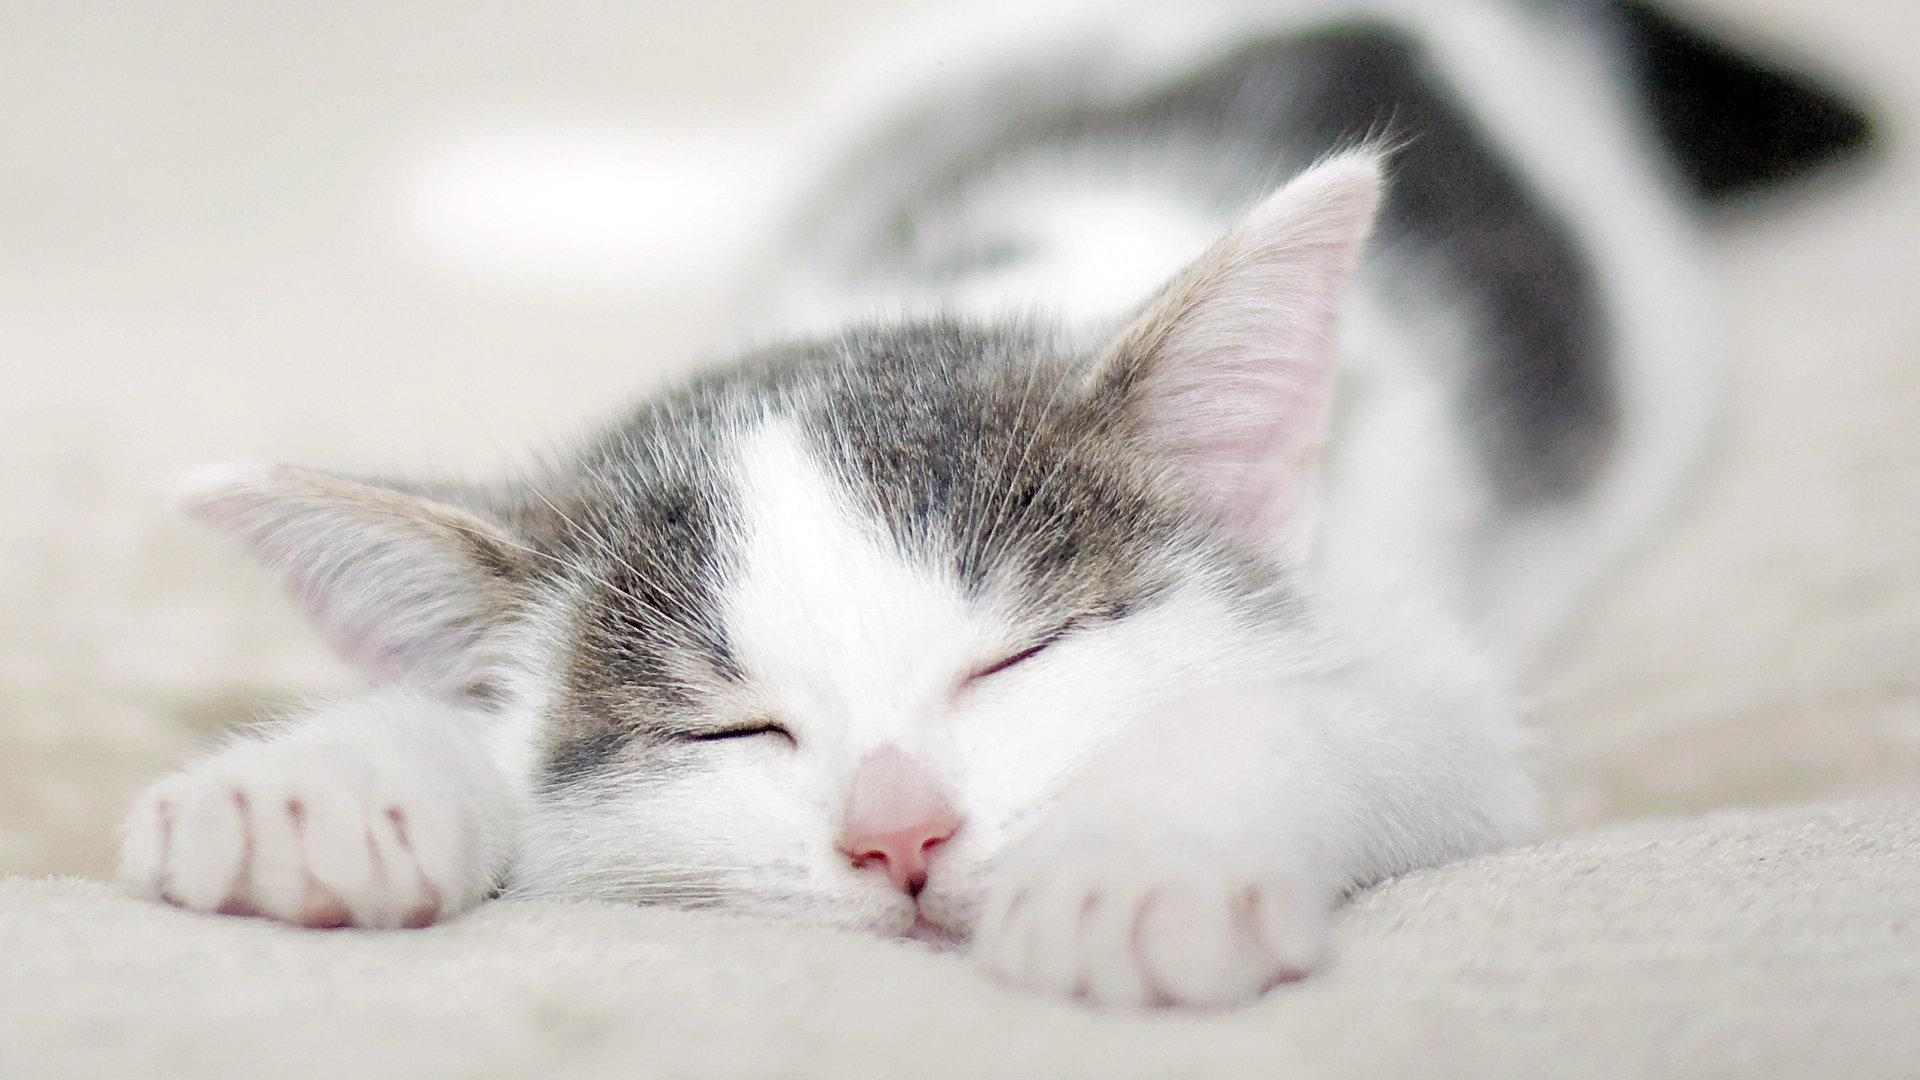 https://alev.biz/wp-content/uploads/2019/04/kitty-sleeping.jpg